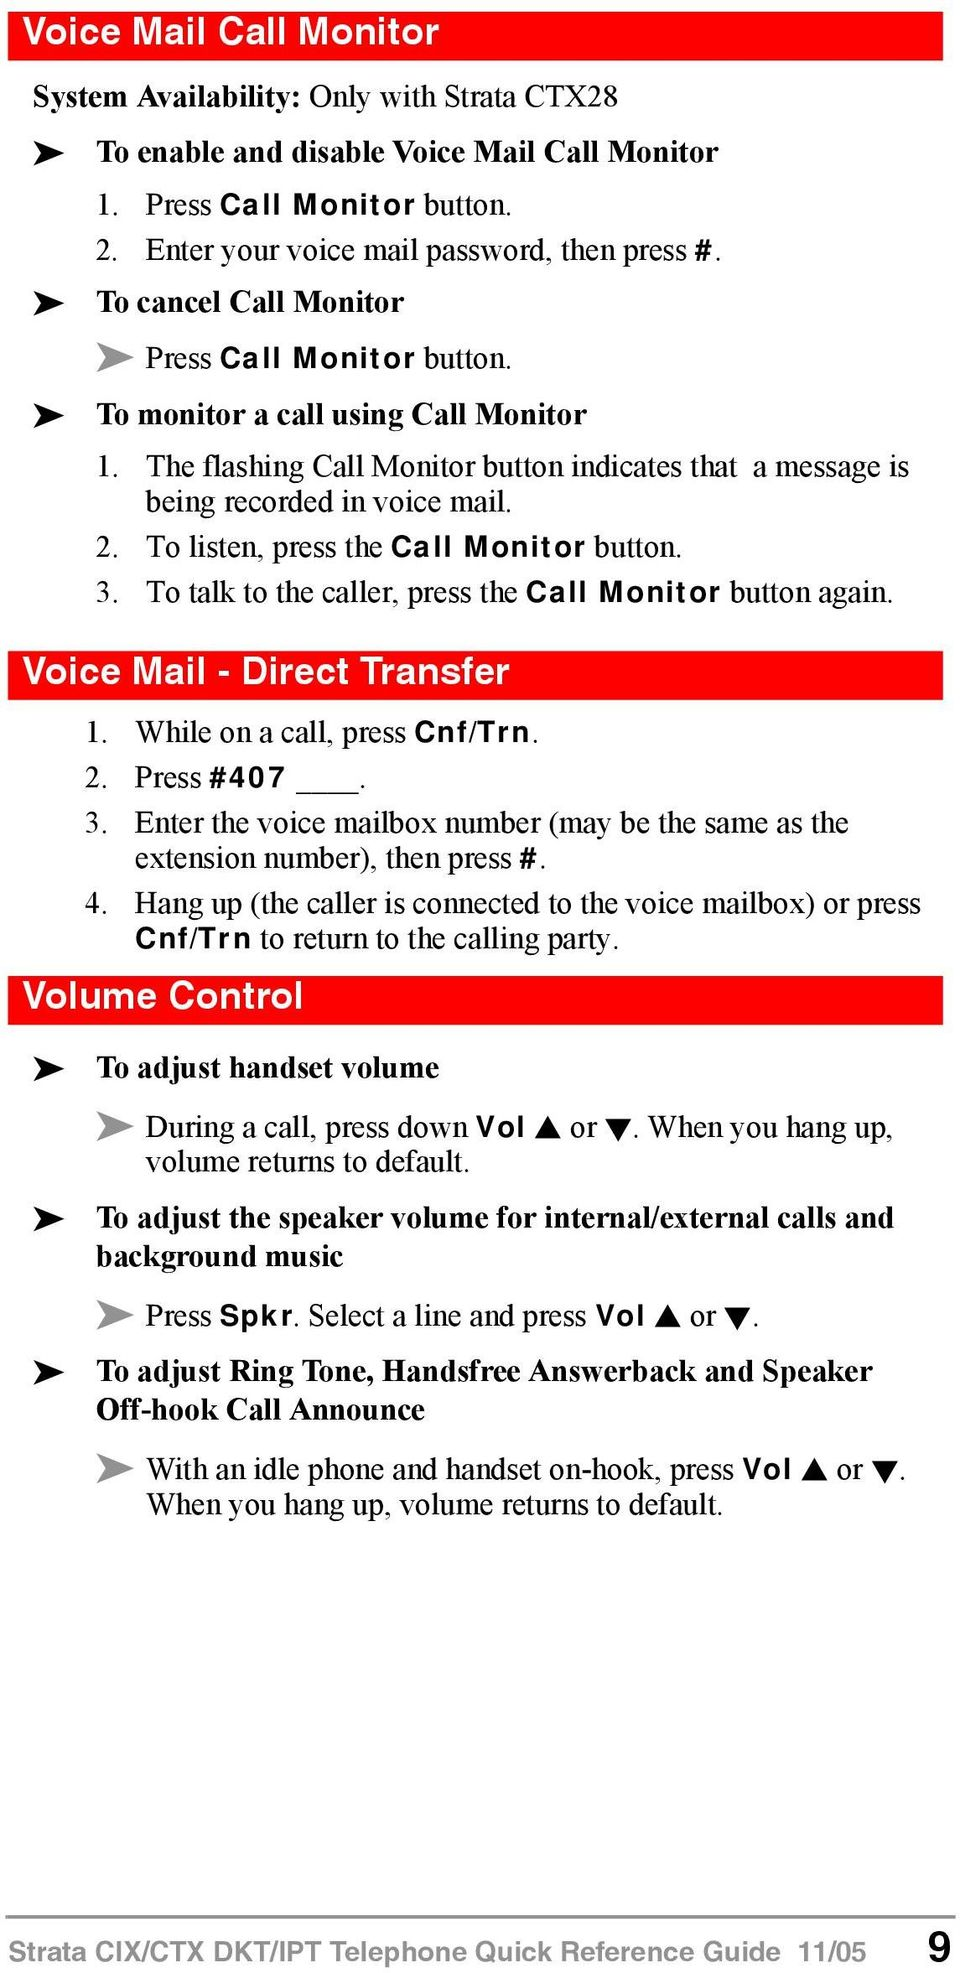 To listen, press the Call Monitor button. 3. To talk to the caller, press the Call Monitor button again. Voice Mail - Direct Transfer 1. While on a call, press Cnf/Trn. 2. Press #407. 3. Enter the voice mailbox number (may be the same as the extension number), then press #.